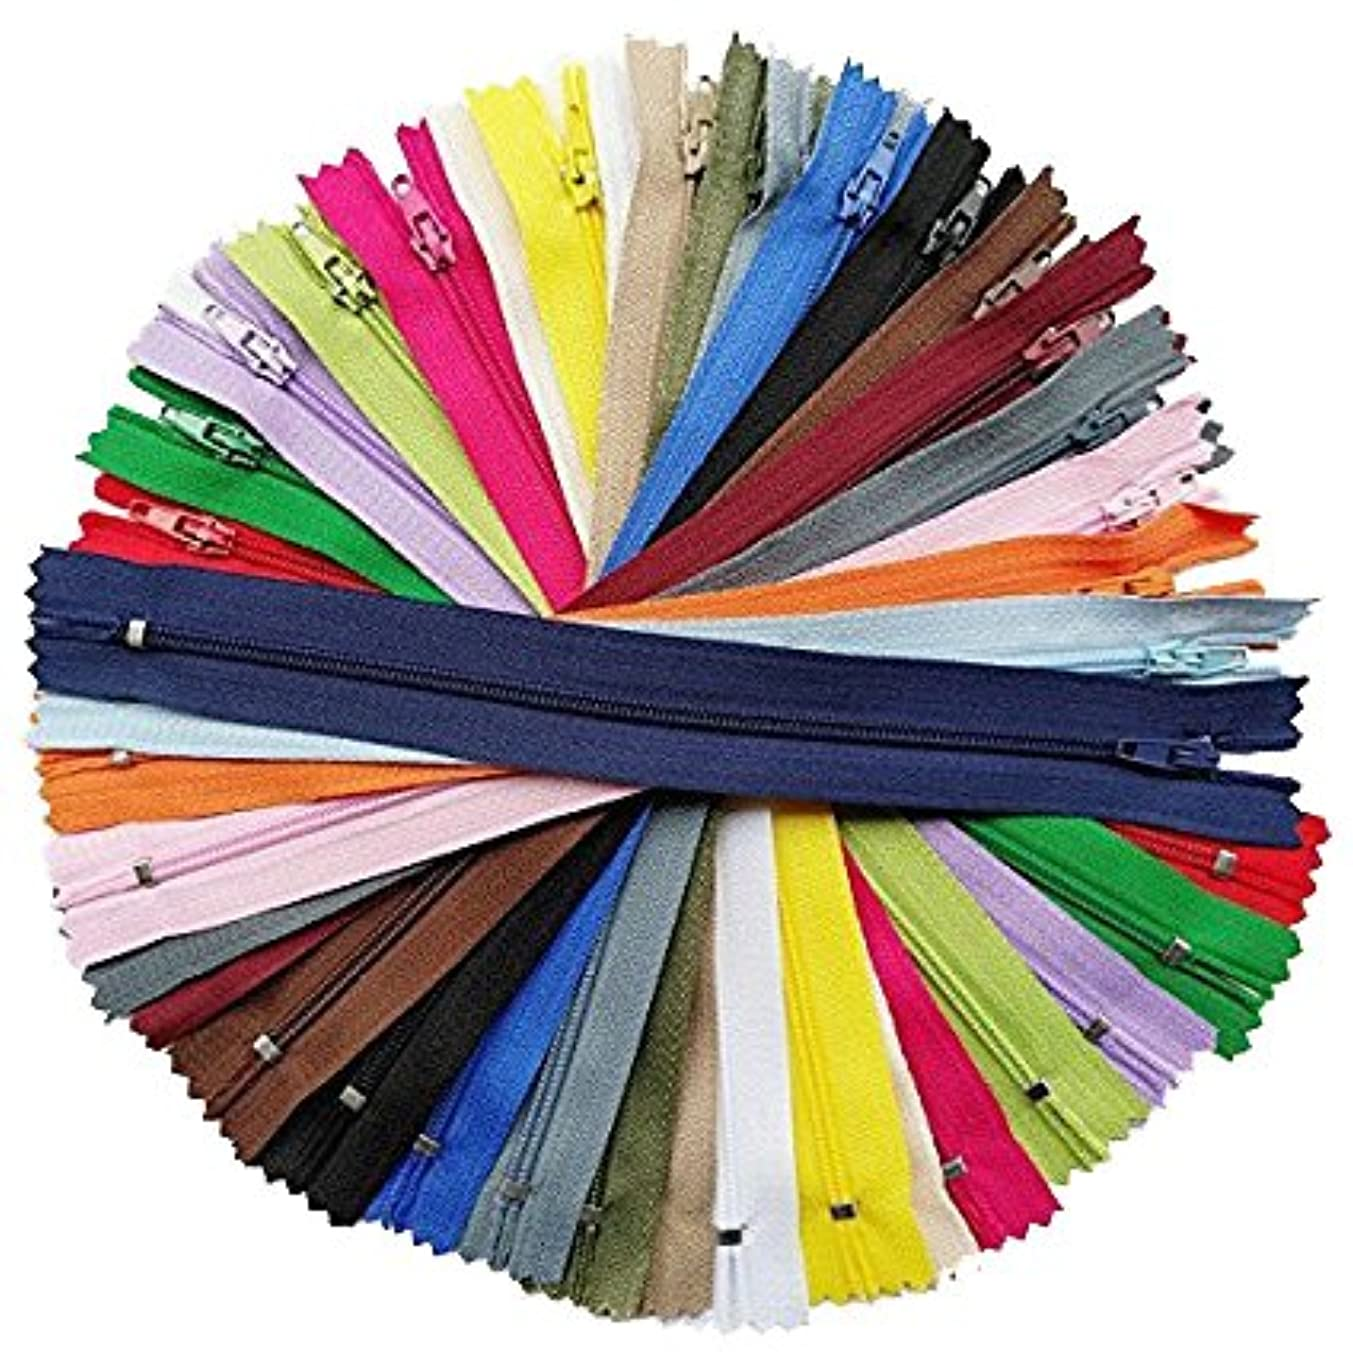 Chenkou Craft 40pcs More Than 20 Colors Nylon Coil Zippers Zipper Kit Tailer Sewing Tools Craft Total Length 9 Inche (Zipper Size 8 inch) Mix Assorted Bulk Lots